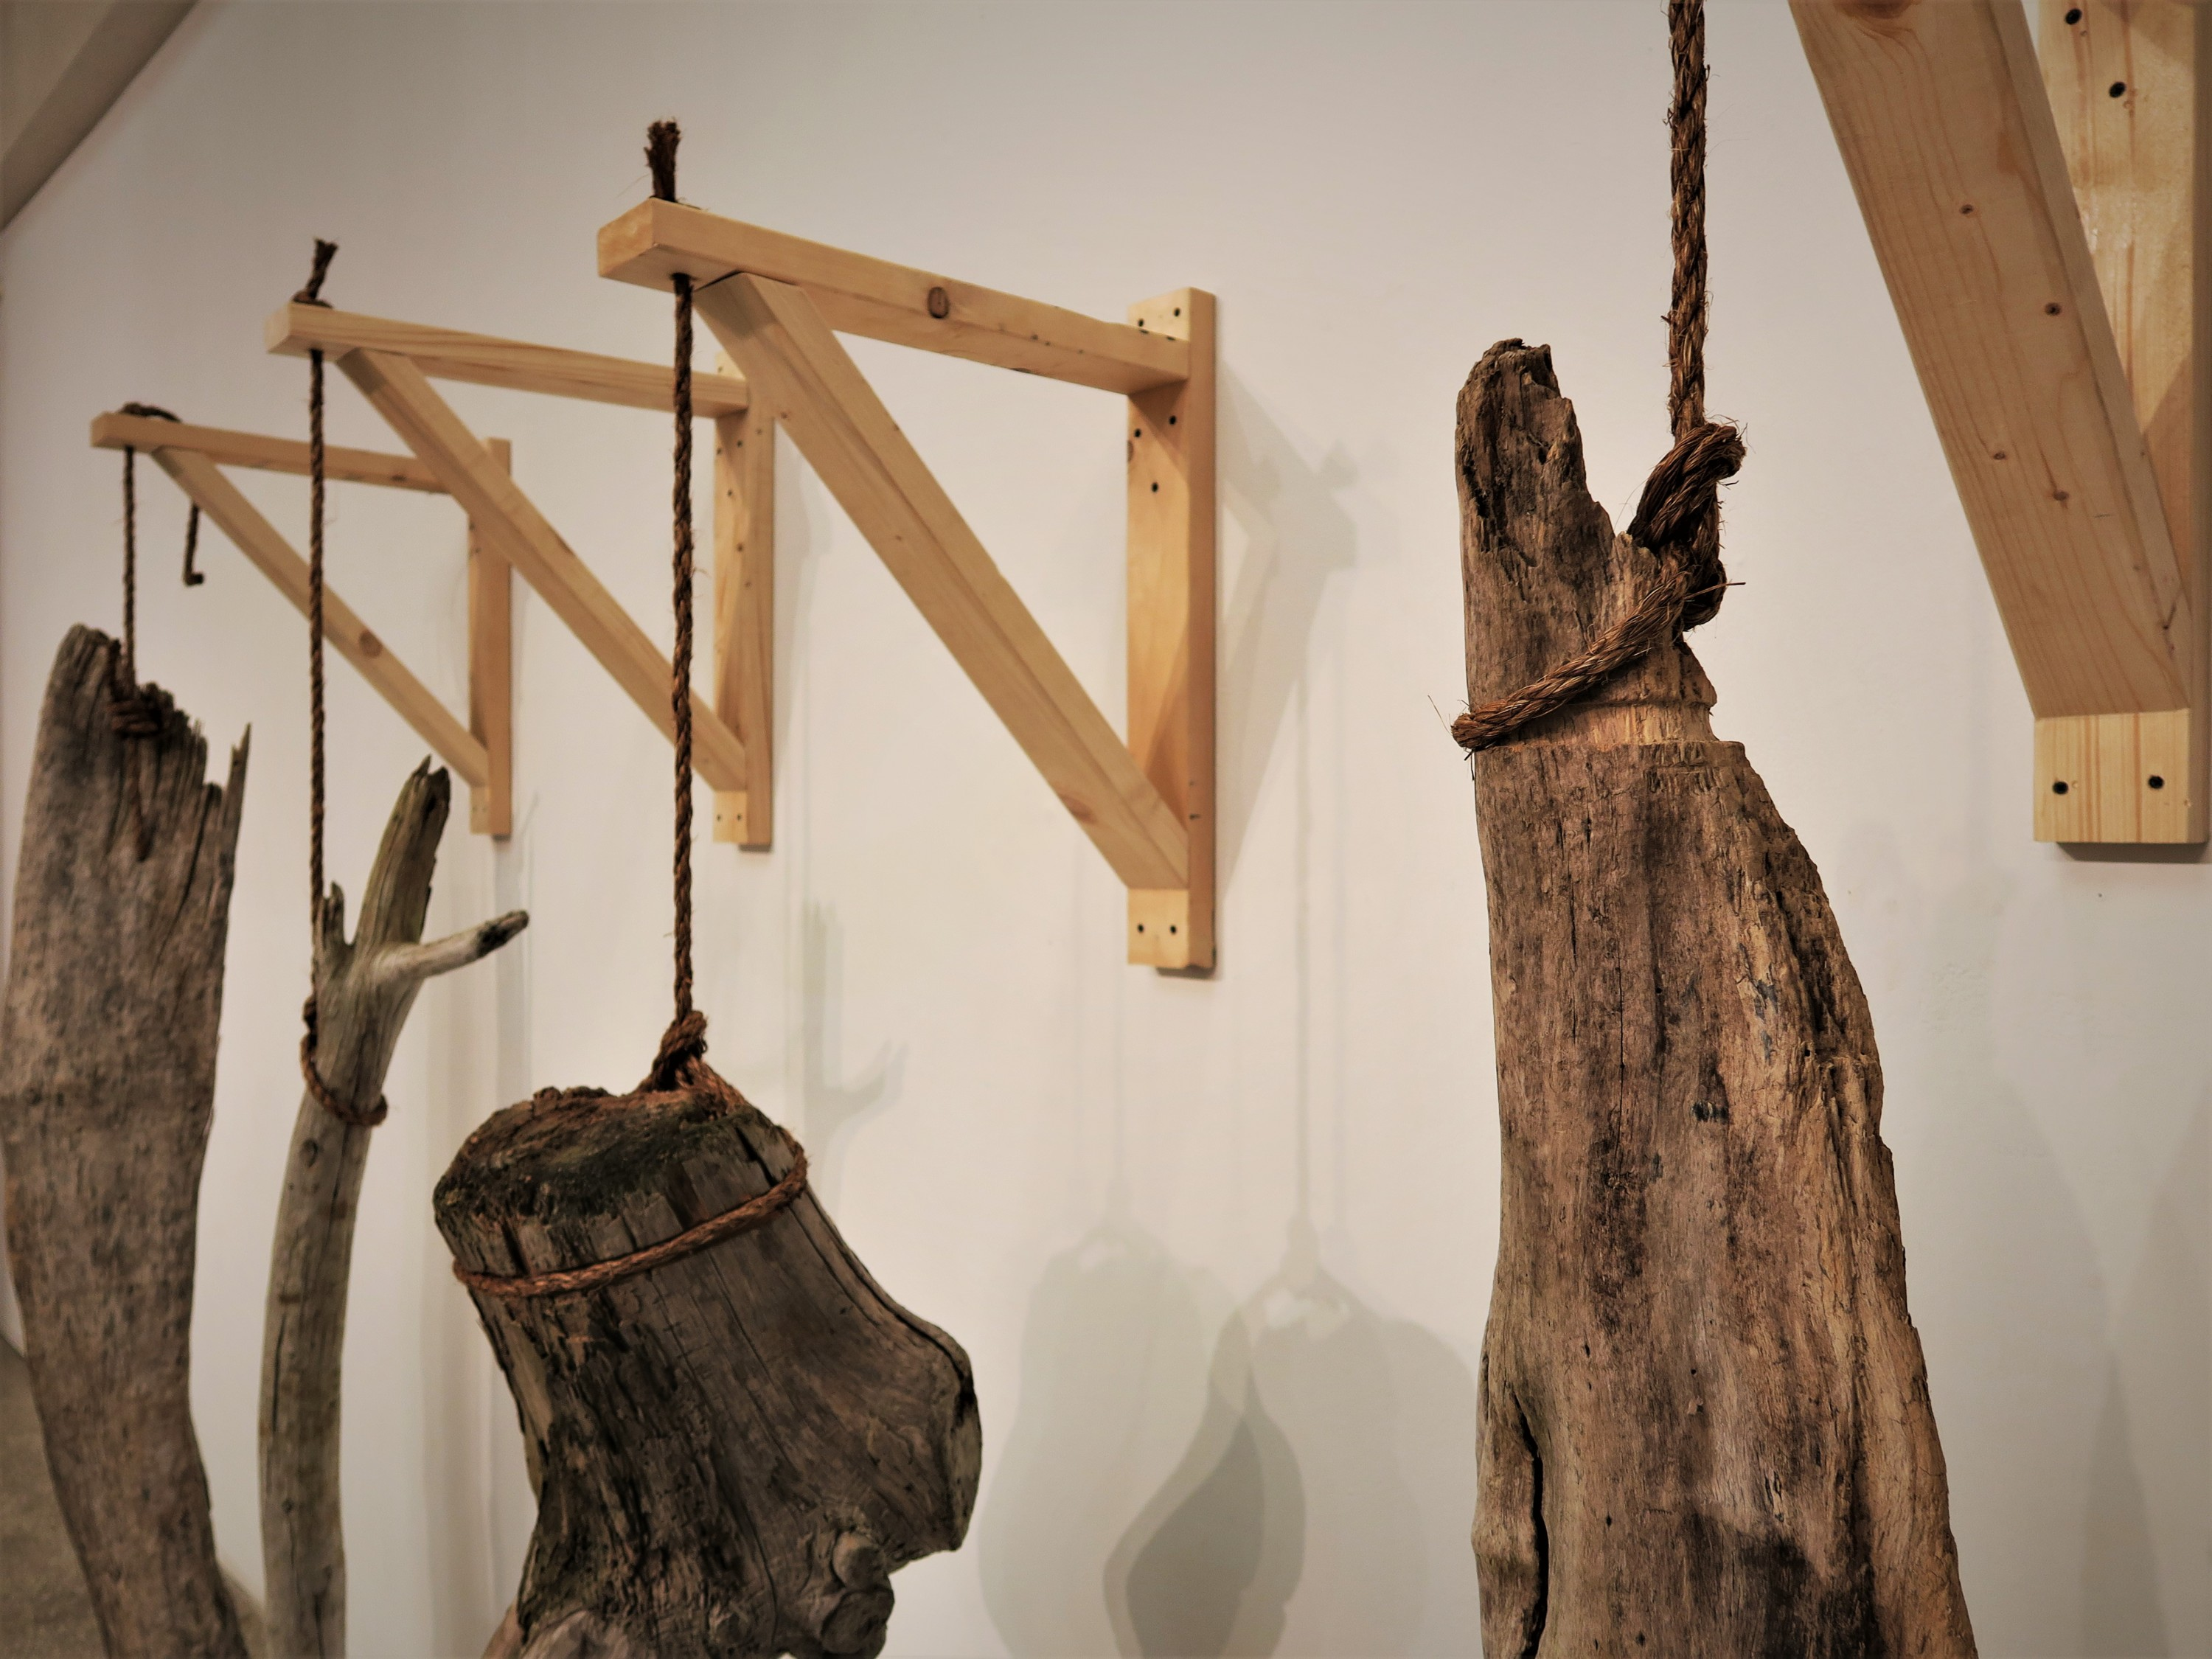 Wood plays an indispensable role in life. Raw, natural wood are treated like animals in a slaughterhouse.